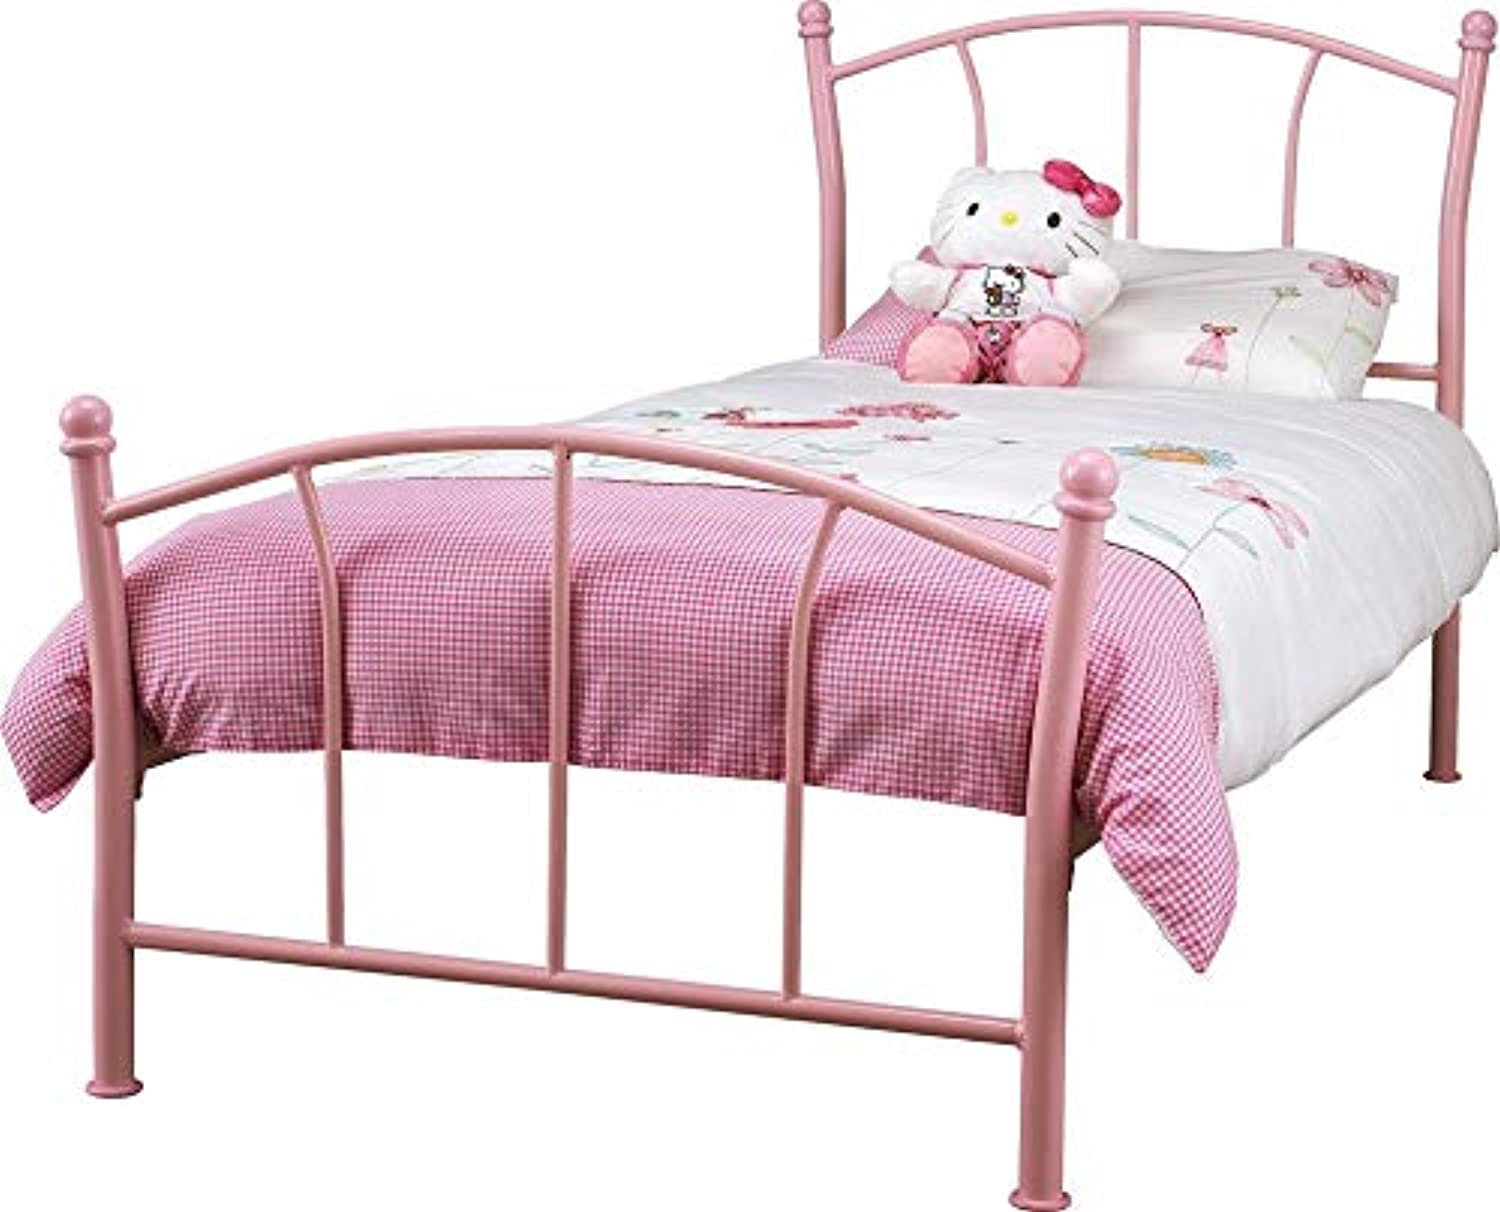 Kiddie Home Space Durable Encounter Bay Single Bed (Pink)